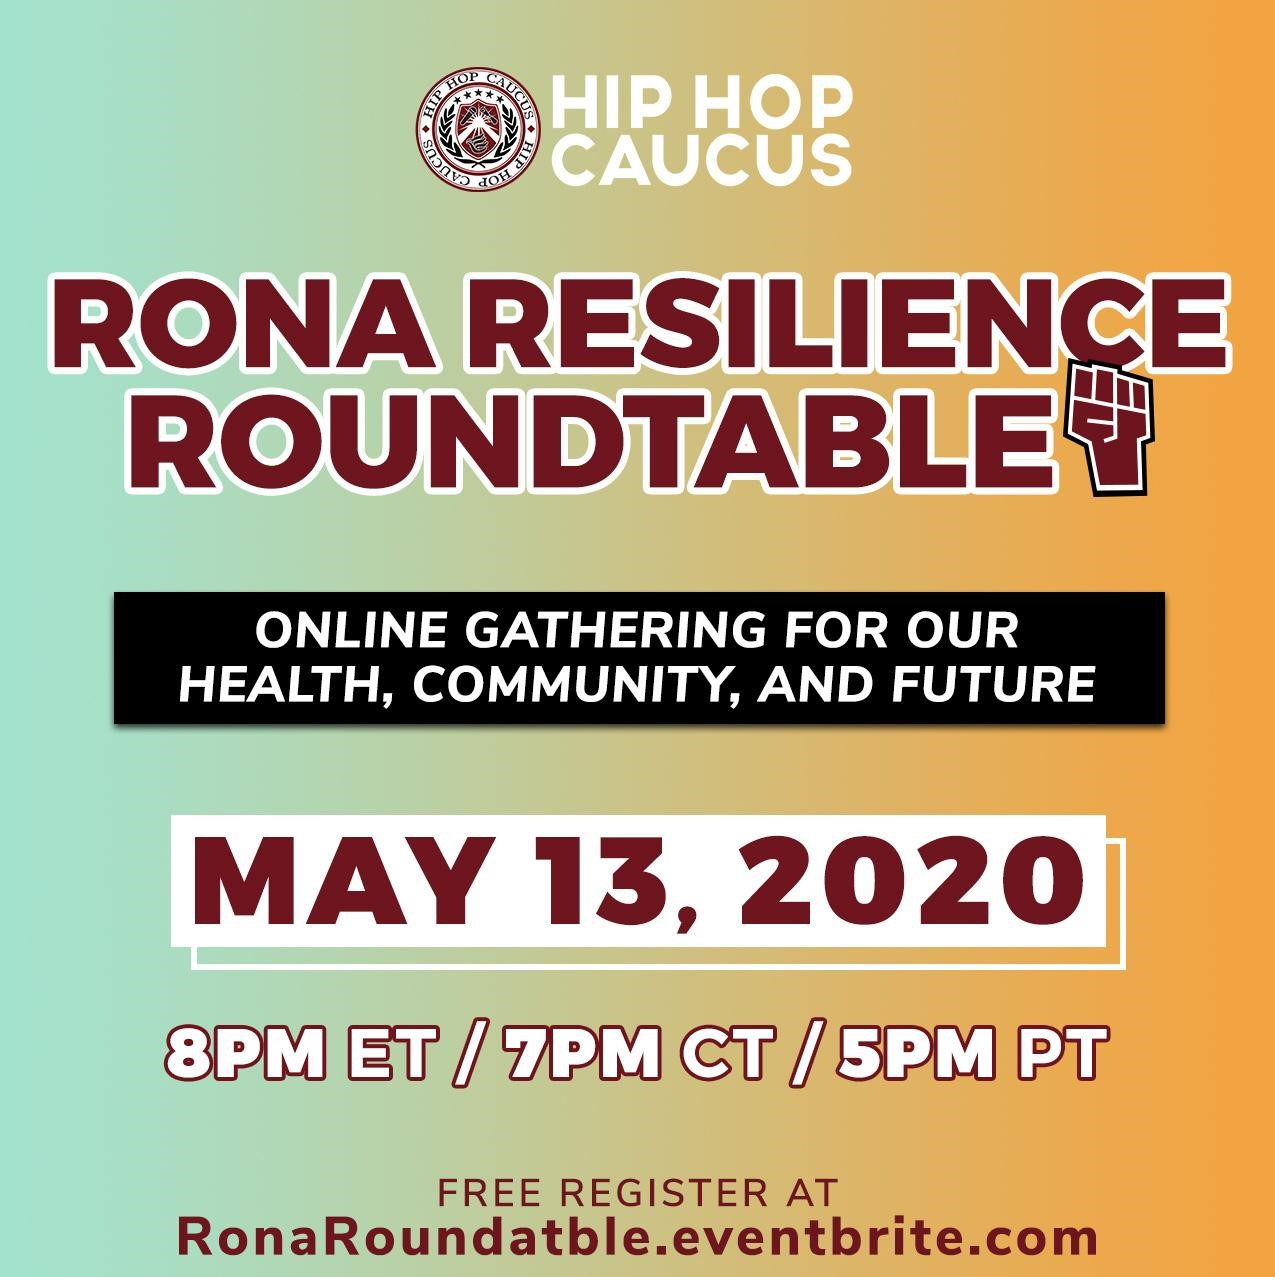 Hip Hop Caucus Rona Resilience Roundtable